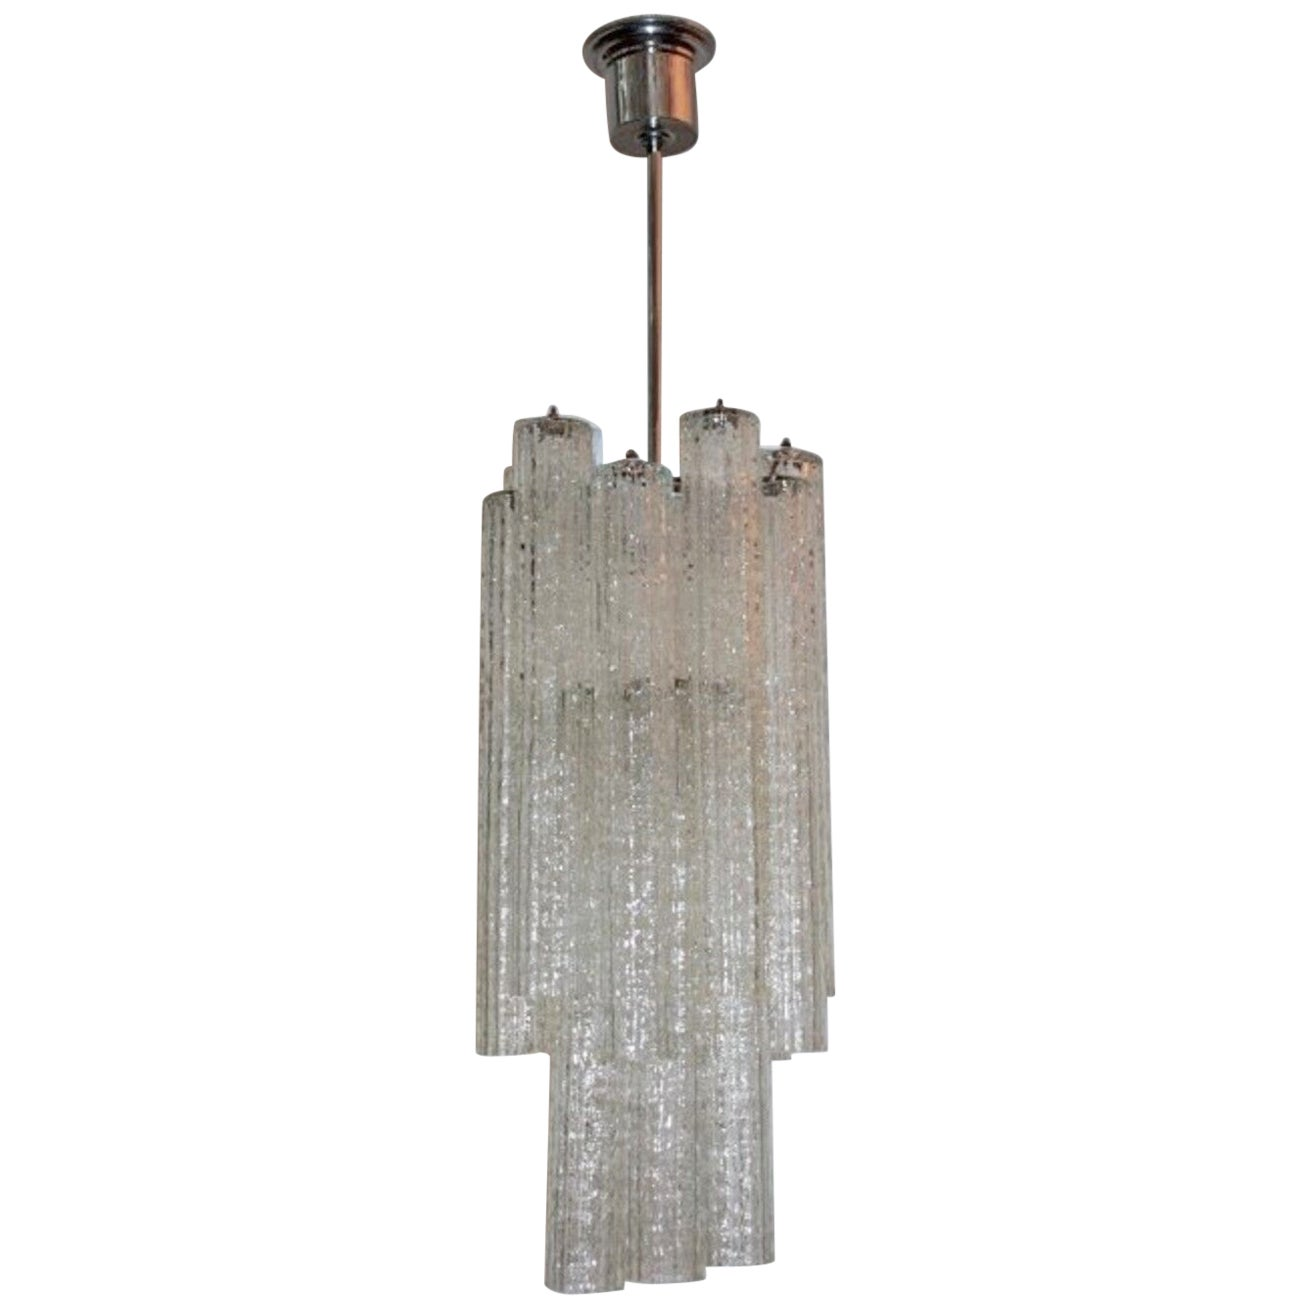 "Chandelier 1970s ""Tronchi"" by Venini"